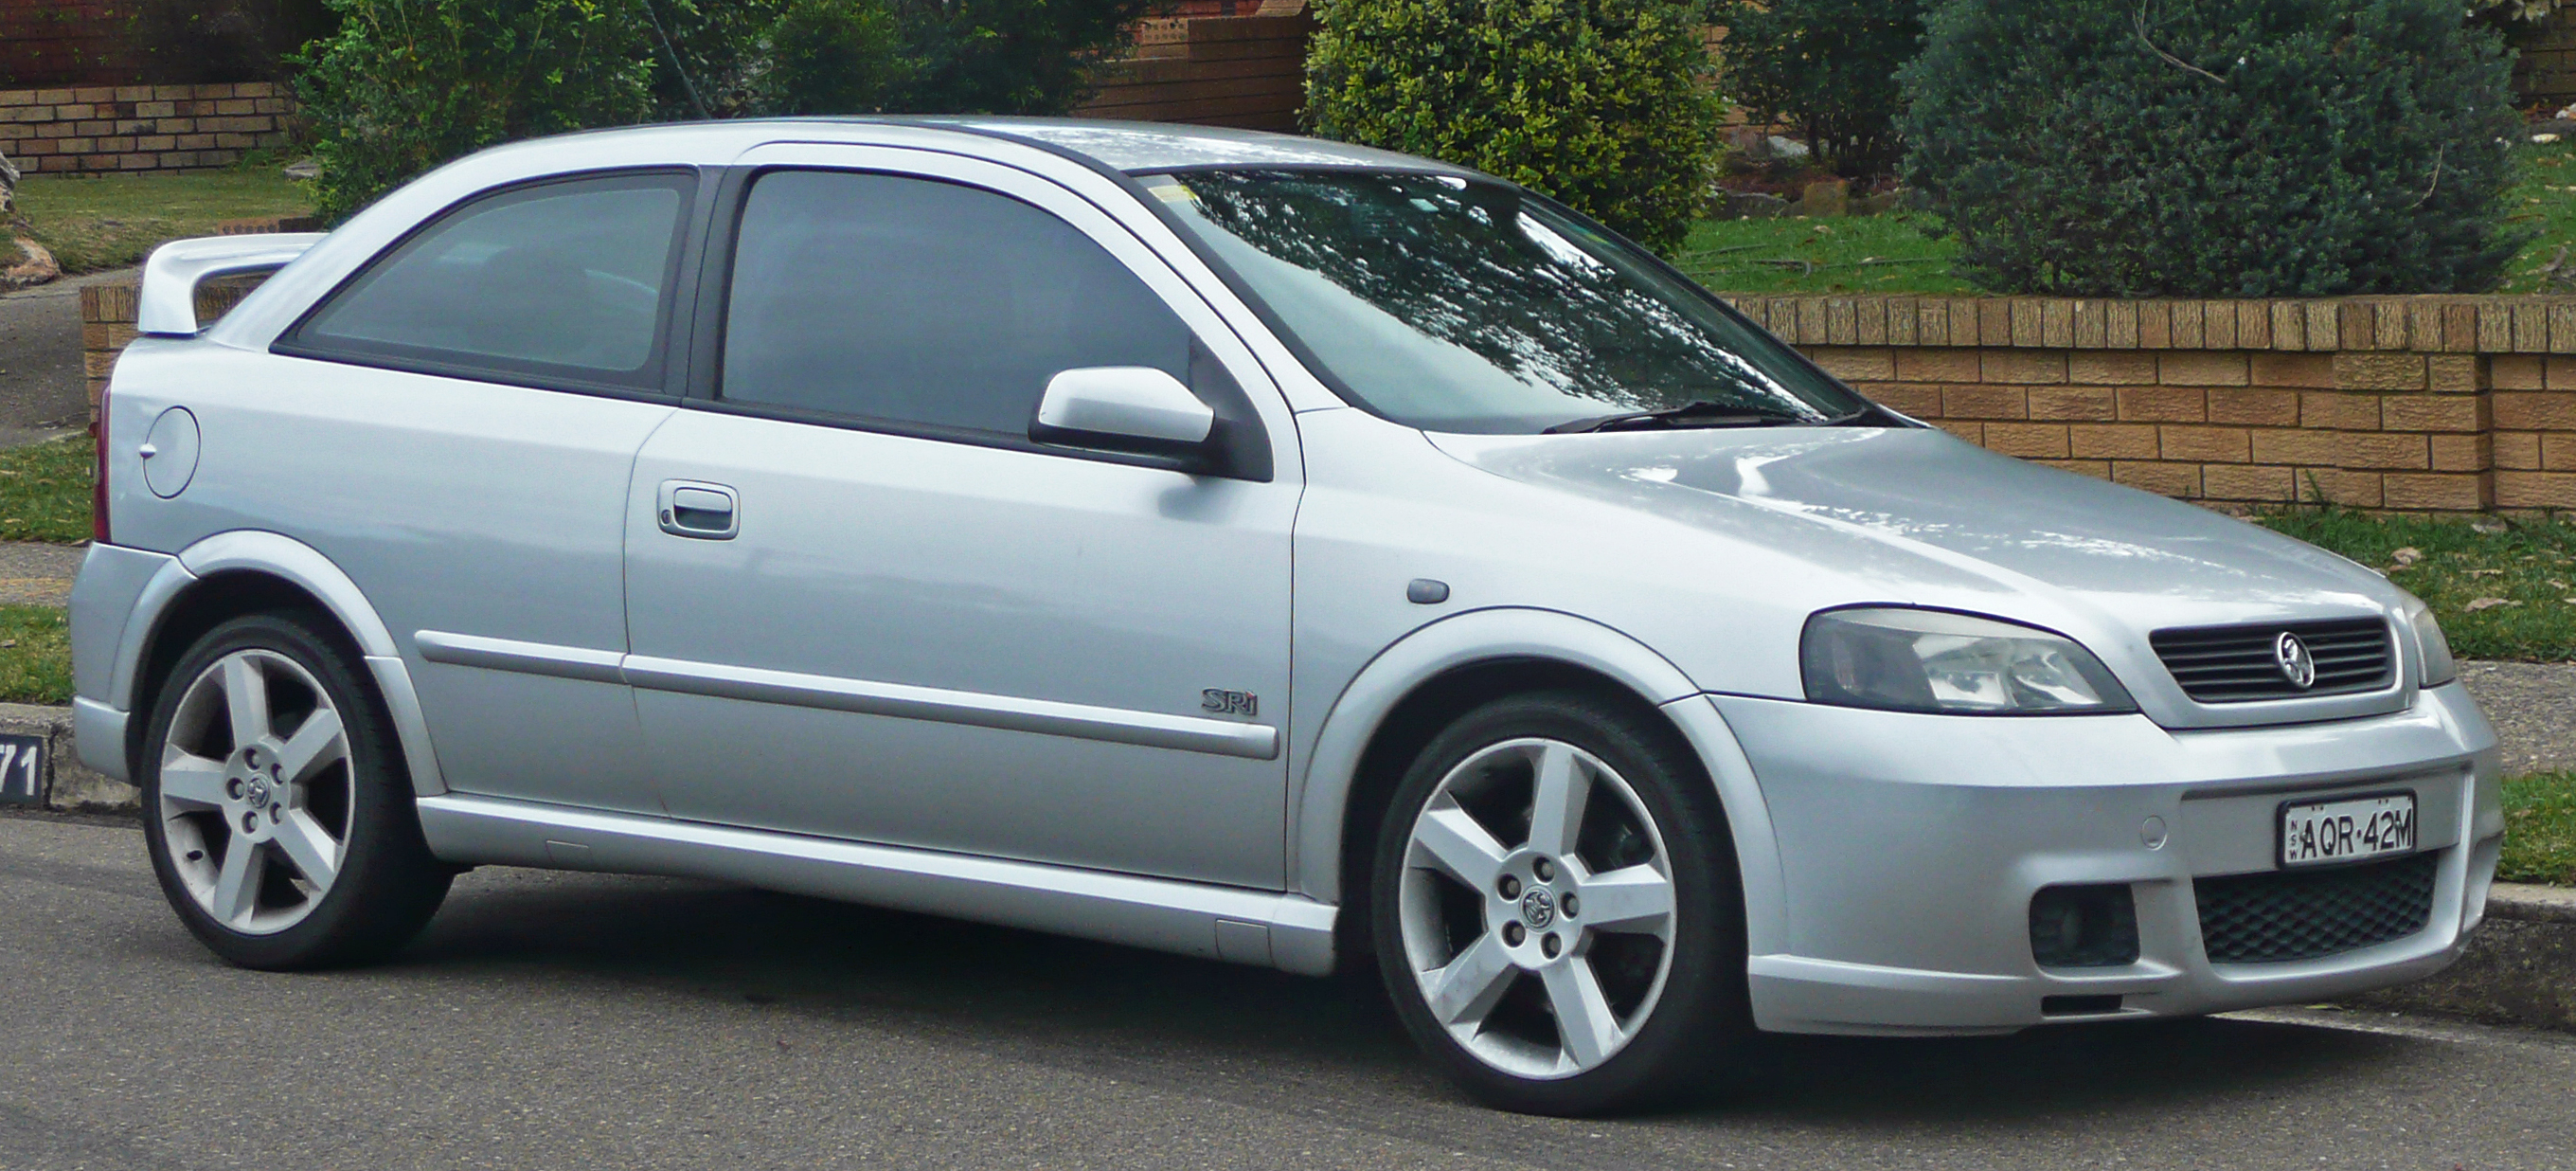 2003 holden astra pictures information and specs auto. Black Bedroom Furniture Sets. Home Design Ideas